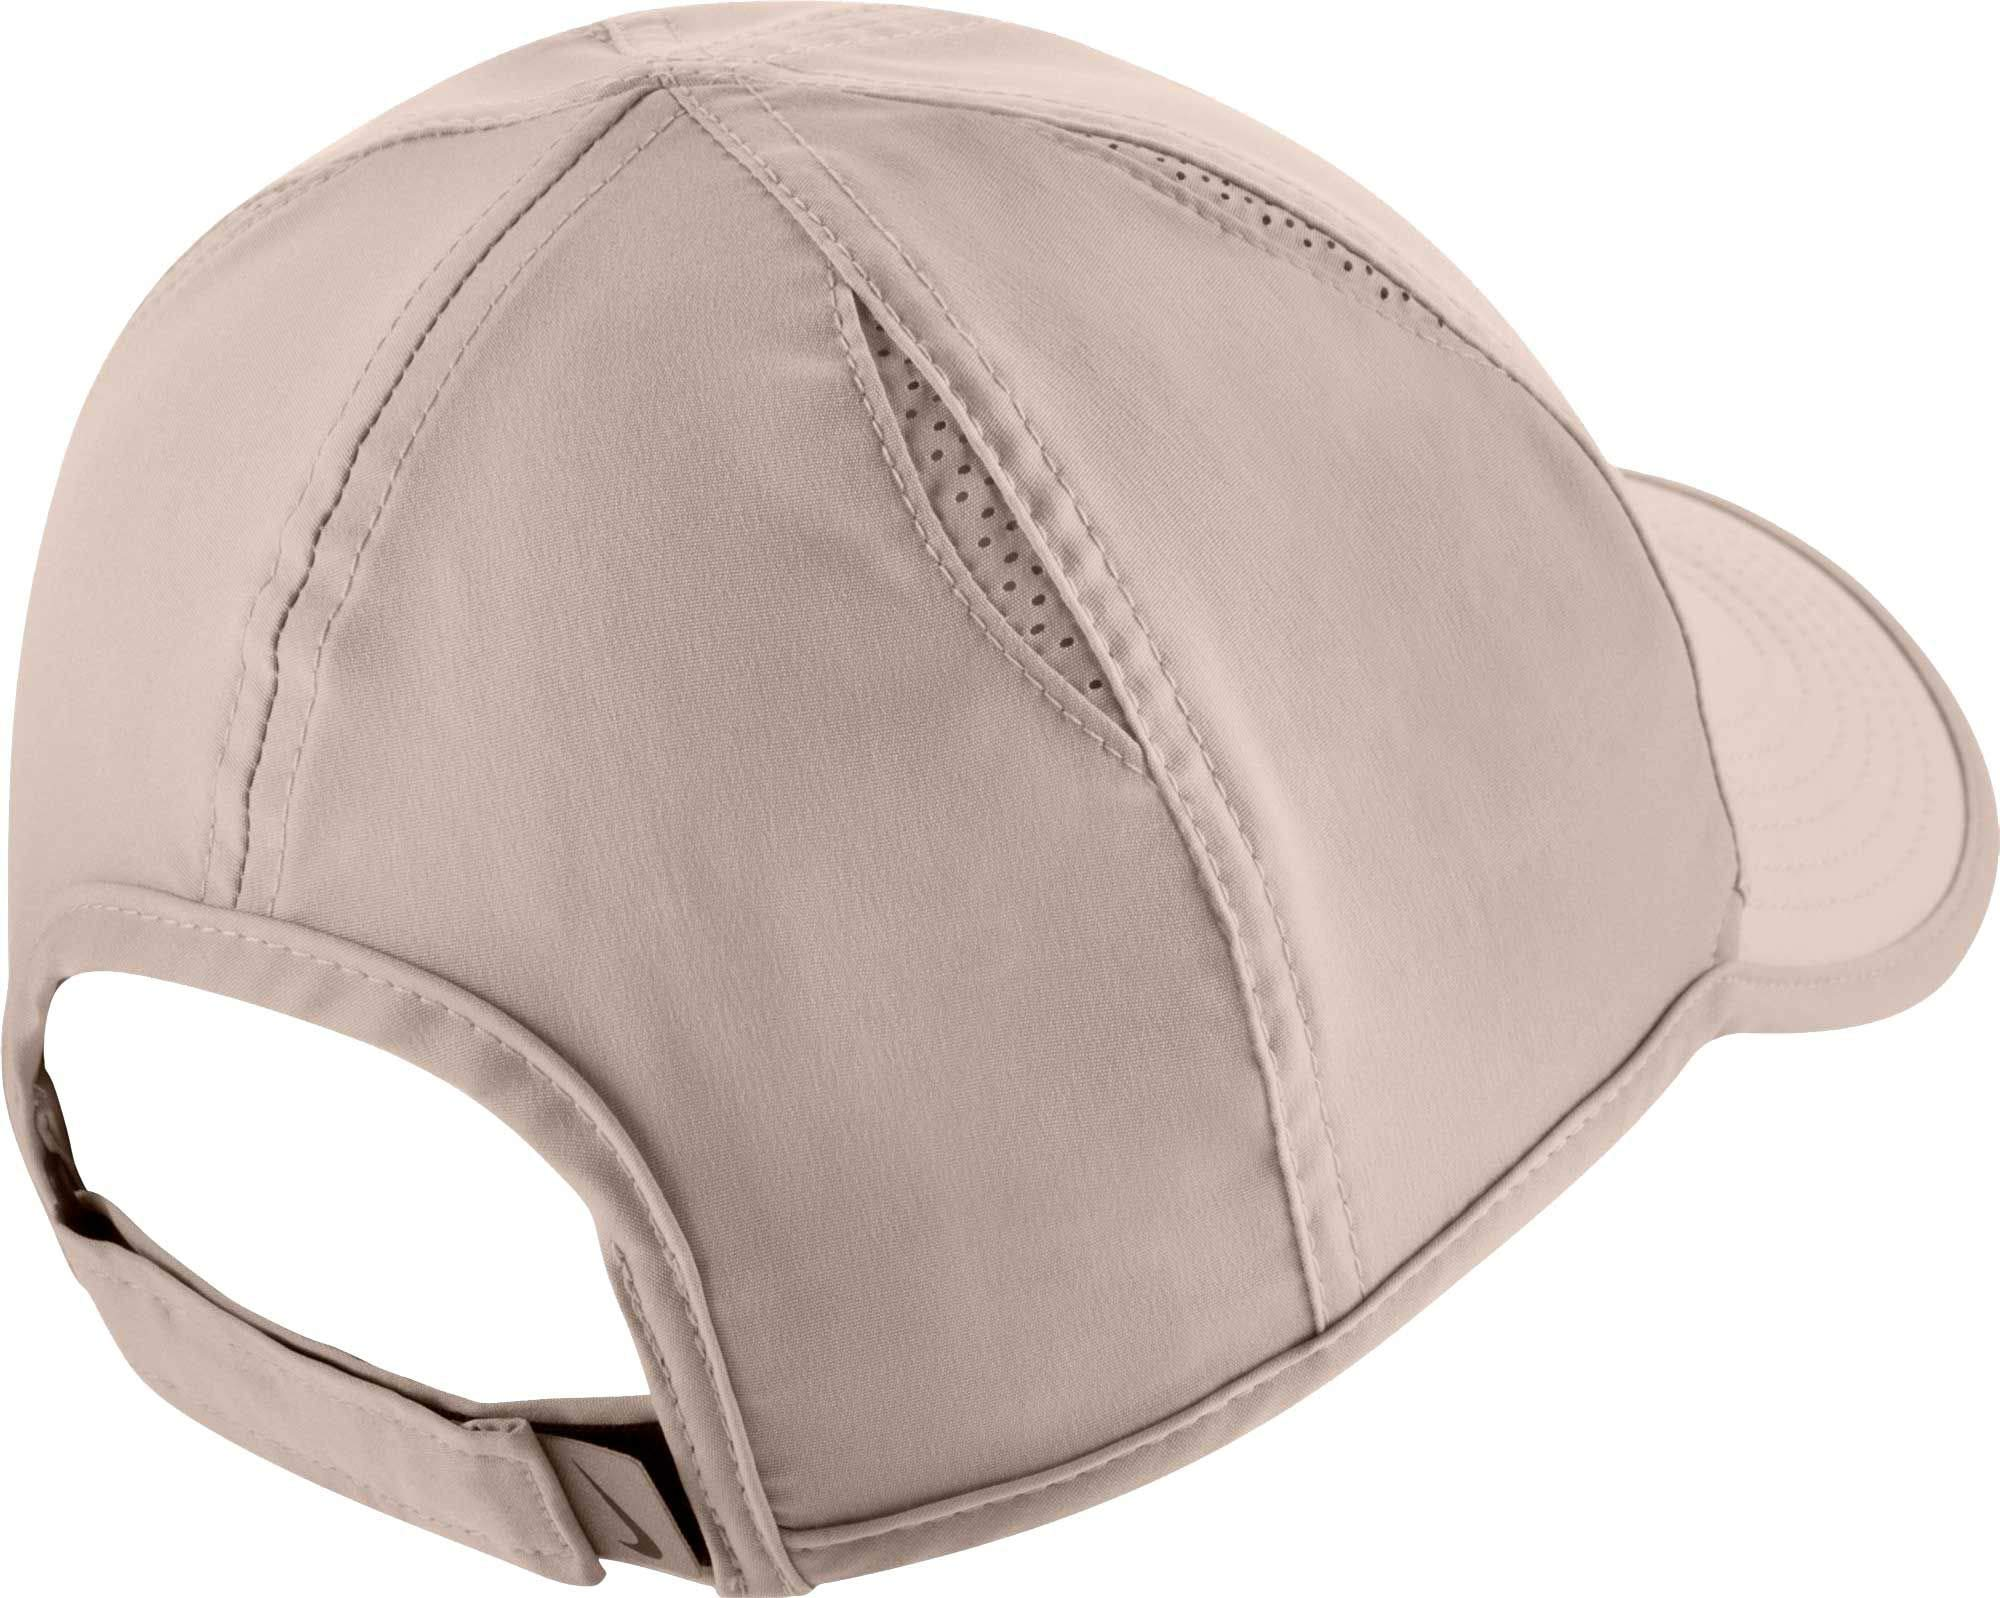 NIKE Women's Feather Light Adjustable Hat (Guava Ice) by Nike (Image #2)